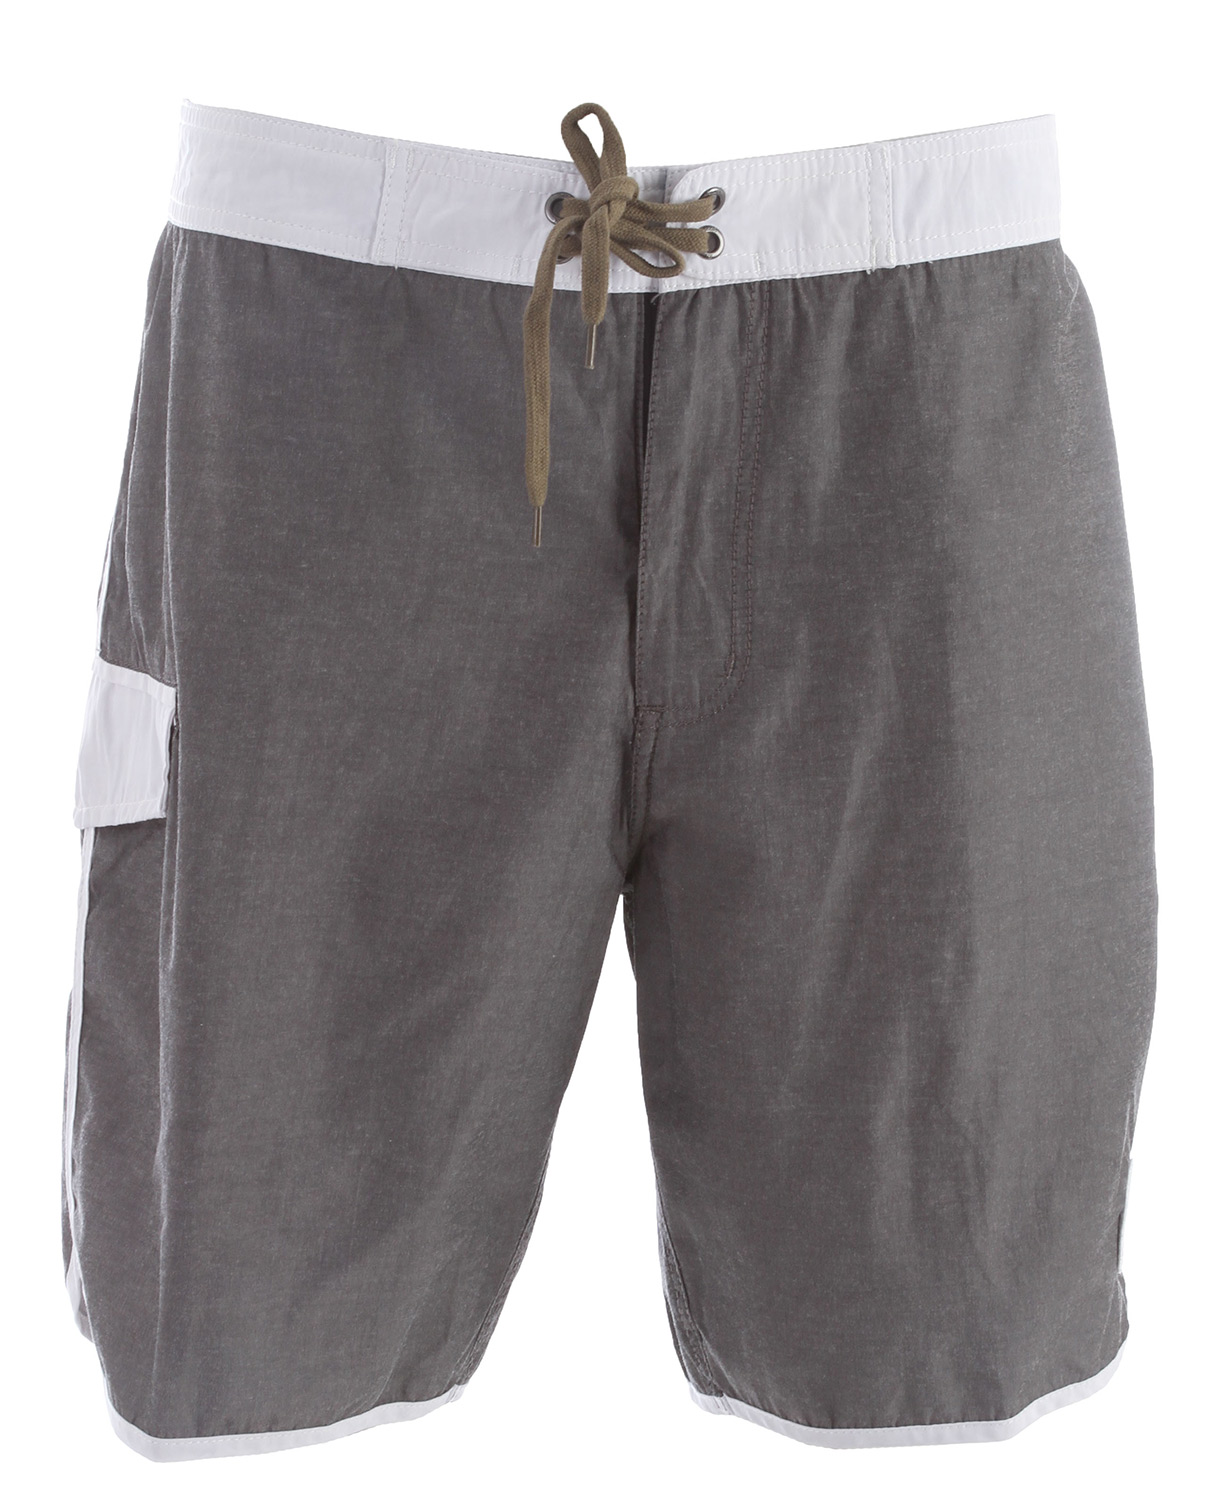 "Surf Key Features of the Analog Hammer Boardshorts: Eco Poly Cotton 19"" Zip fly scallop leg board short in faded solids with contrast piping, side pocket, and waistband Cotton draw cord with anti-rash lycra at front fly and rise Signature selvedge denim loop and patch detail 53% Cotton / 47% Eco Poly - $56.00"